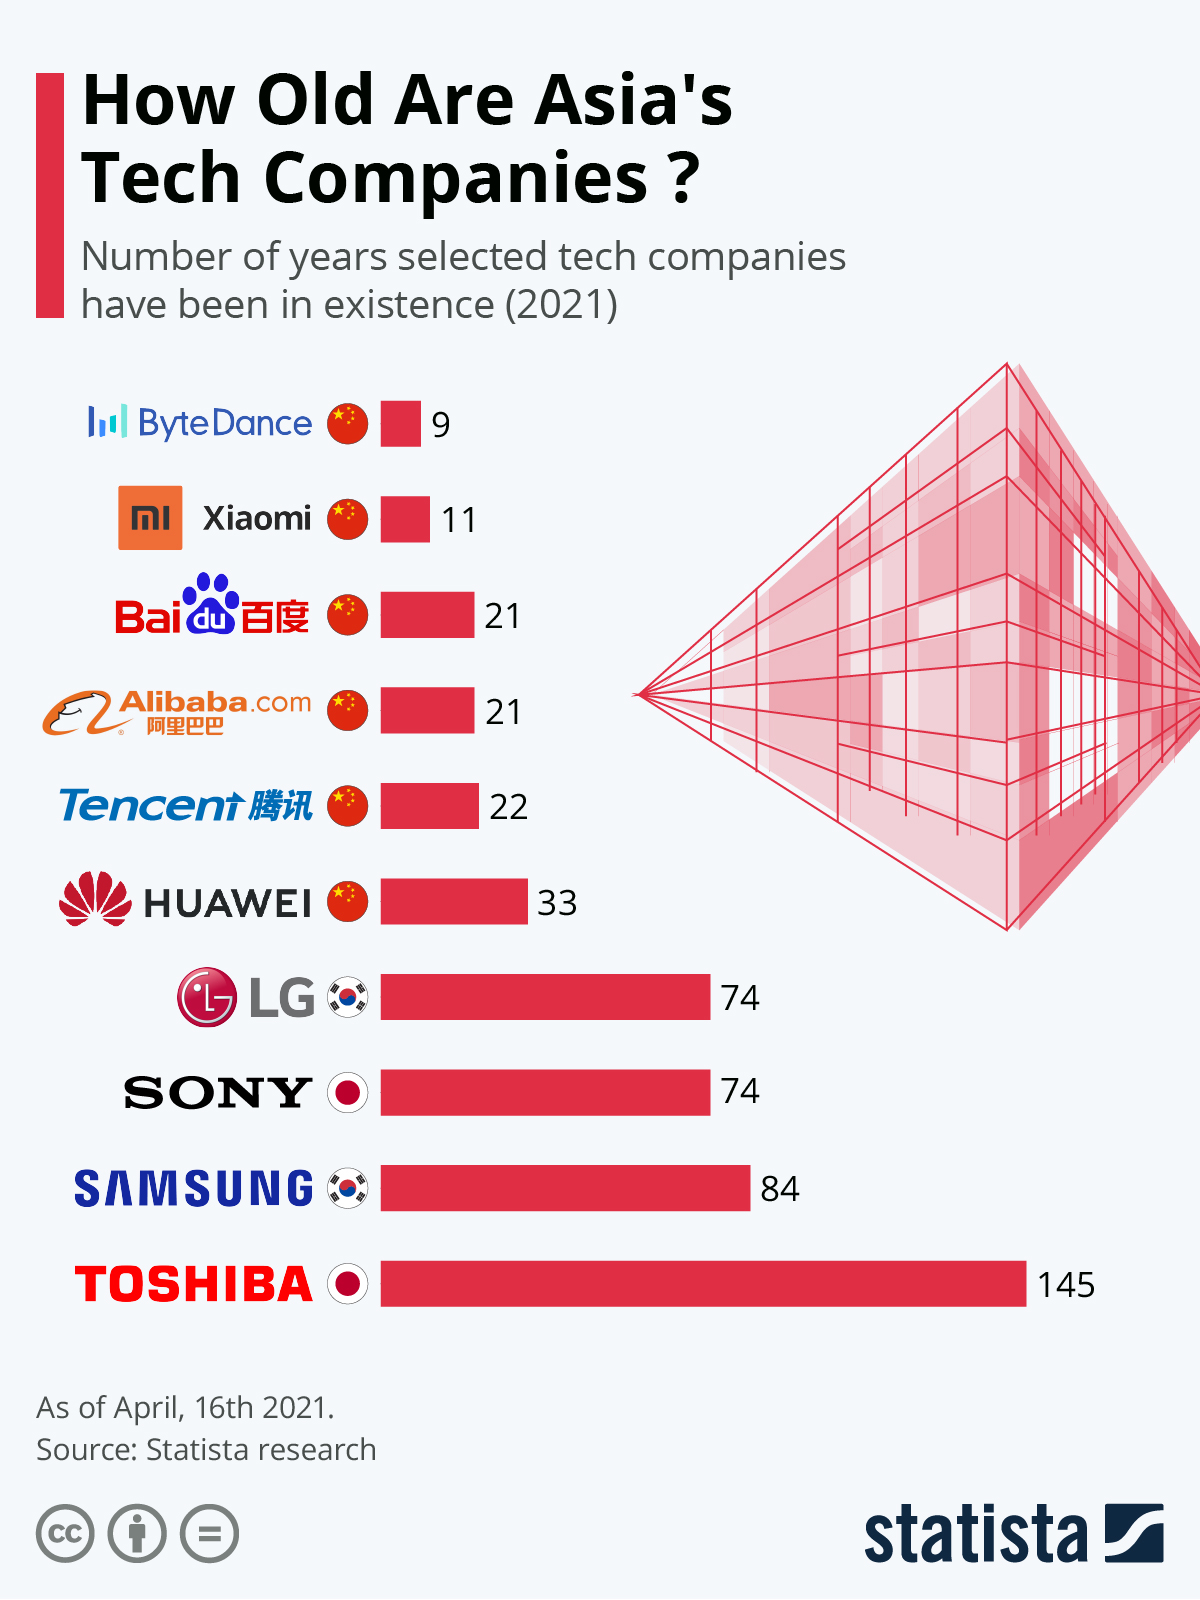 How old are Asian big tech companies